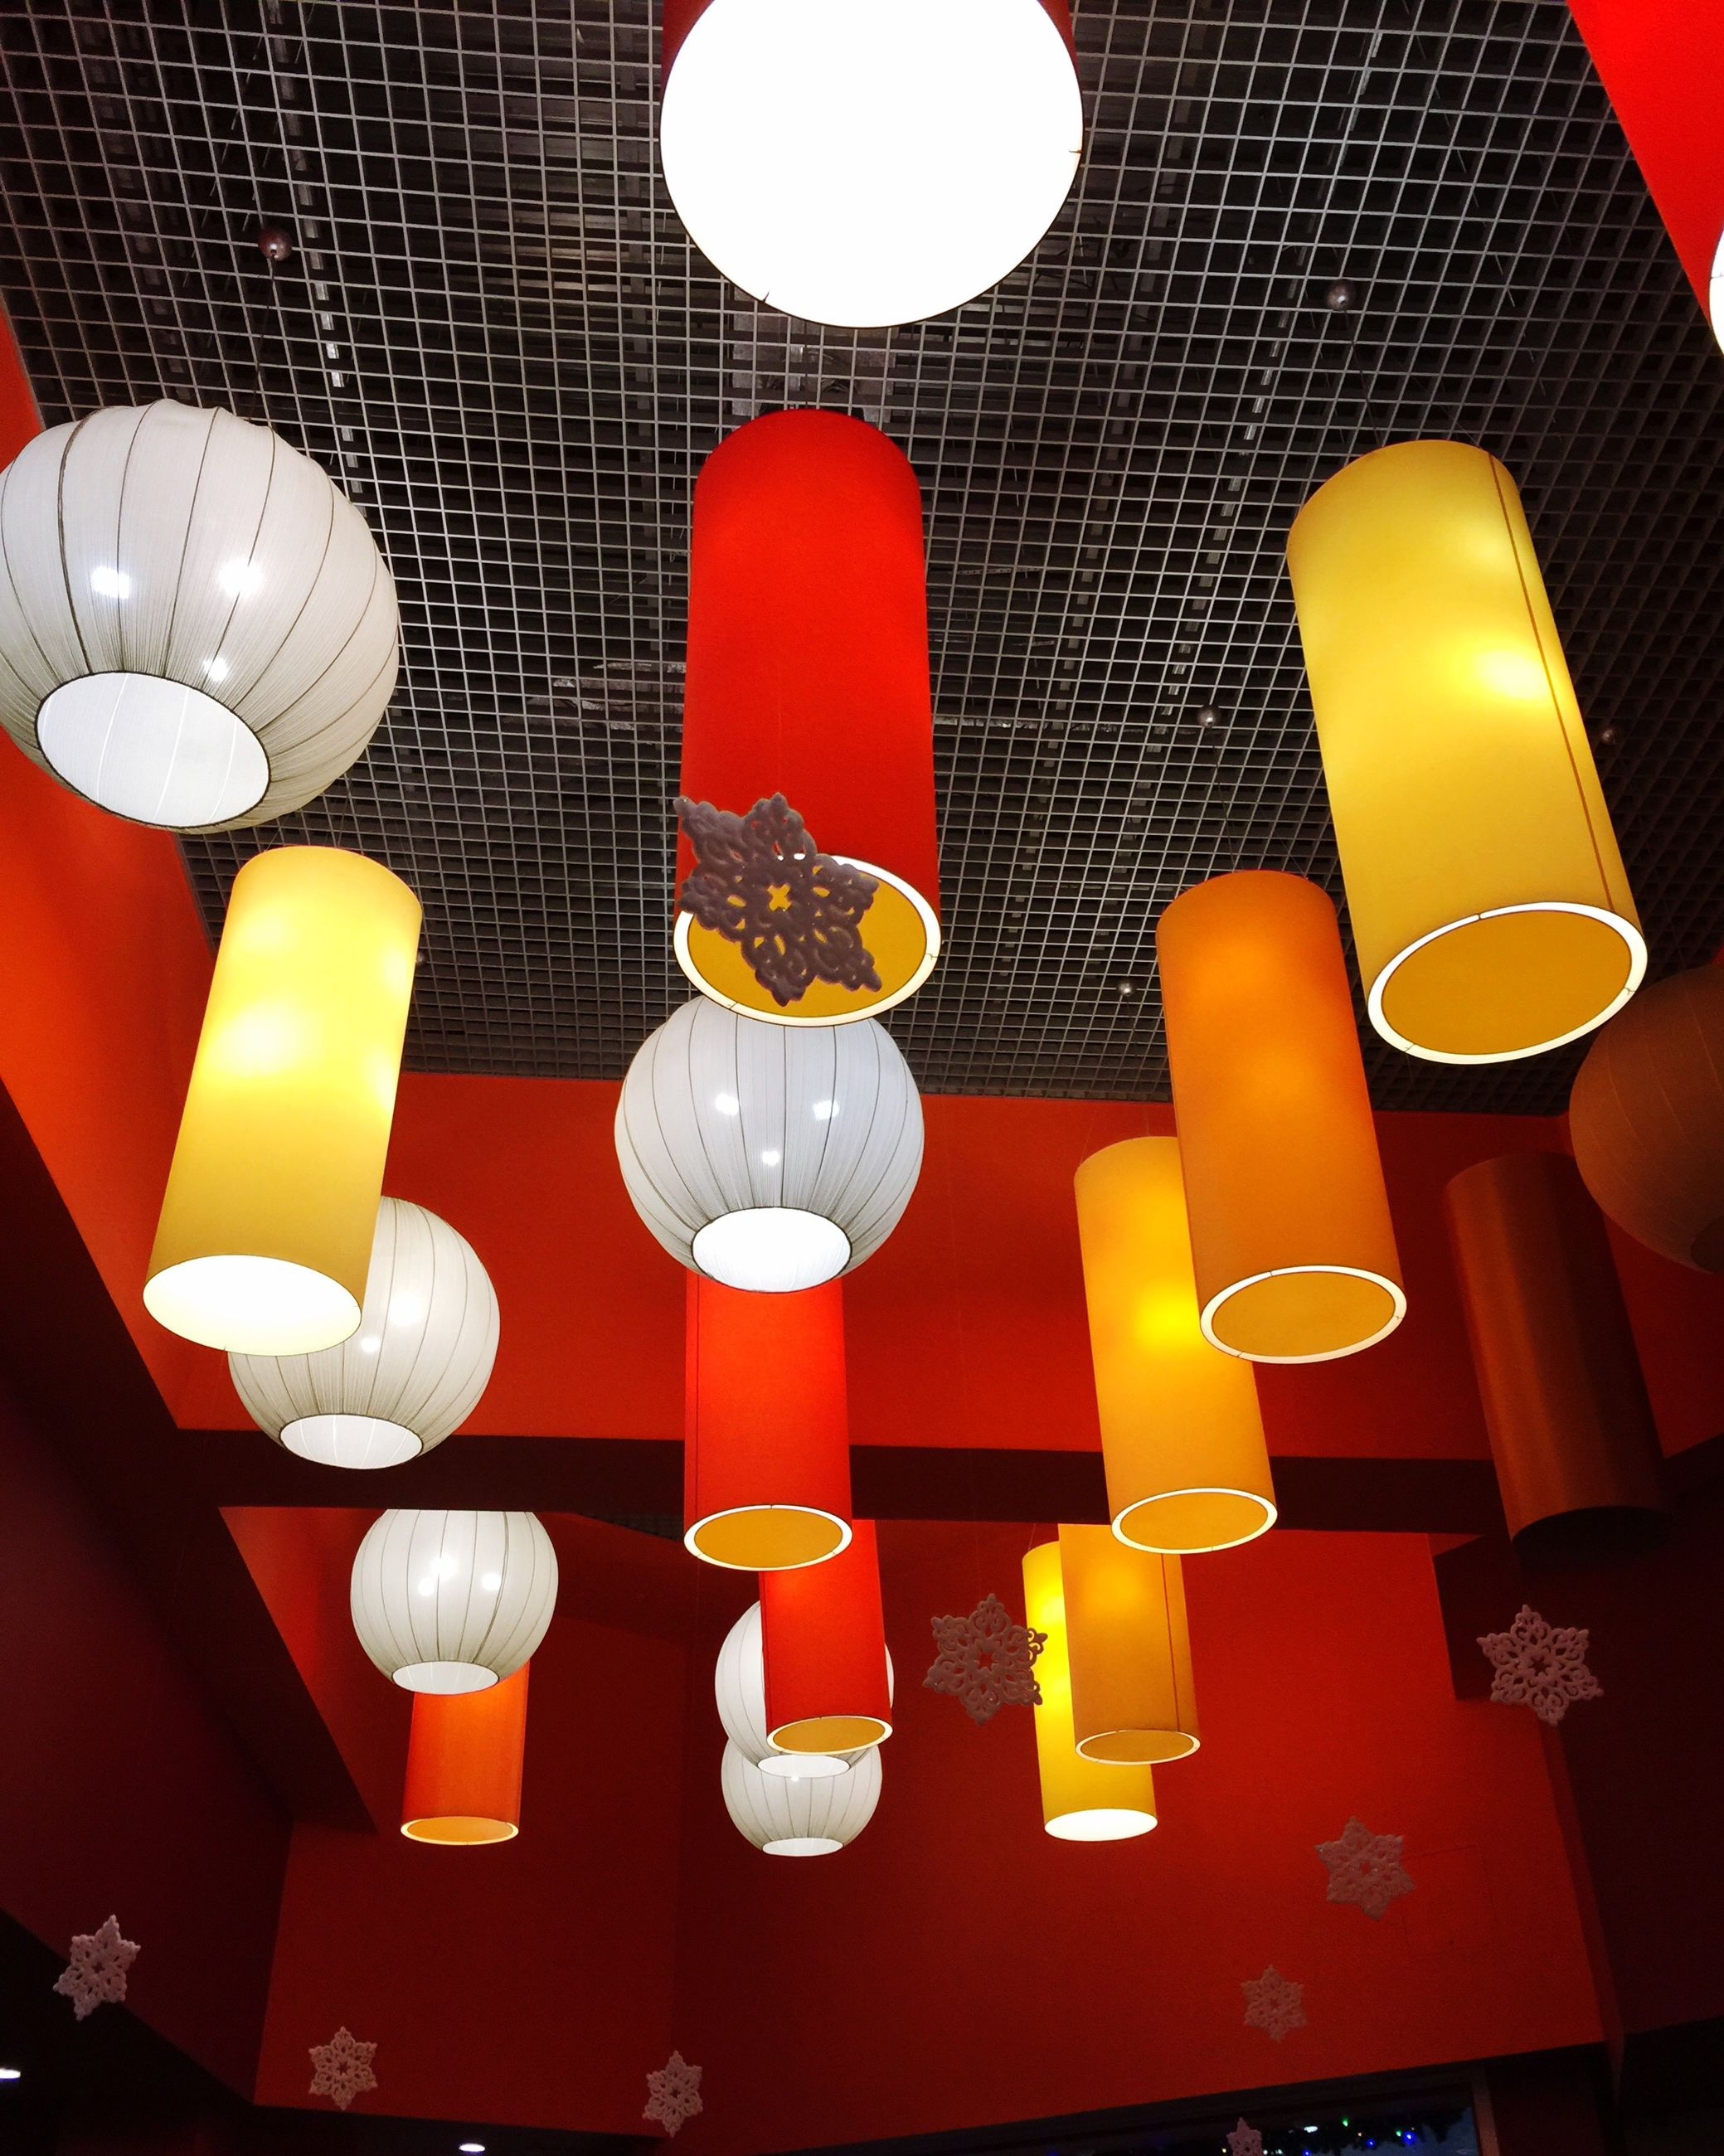 illuminated, lighting equipment, indoors, hanging, decoration, electric lamp, ceiling, low angle view, lamp, lantern, electric light, electricity, in a row, table, arrangement, no people, lit, wall - building feature, variation, red